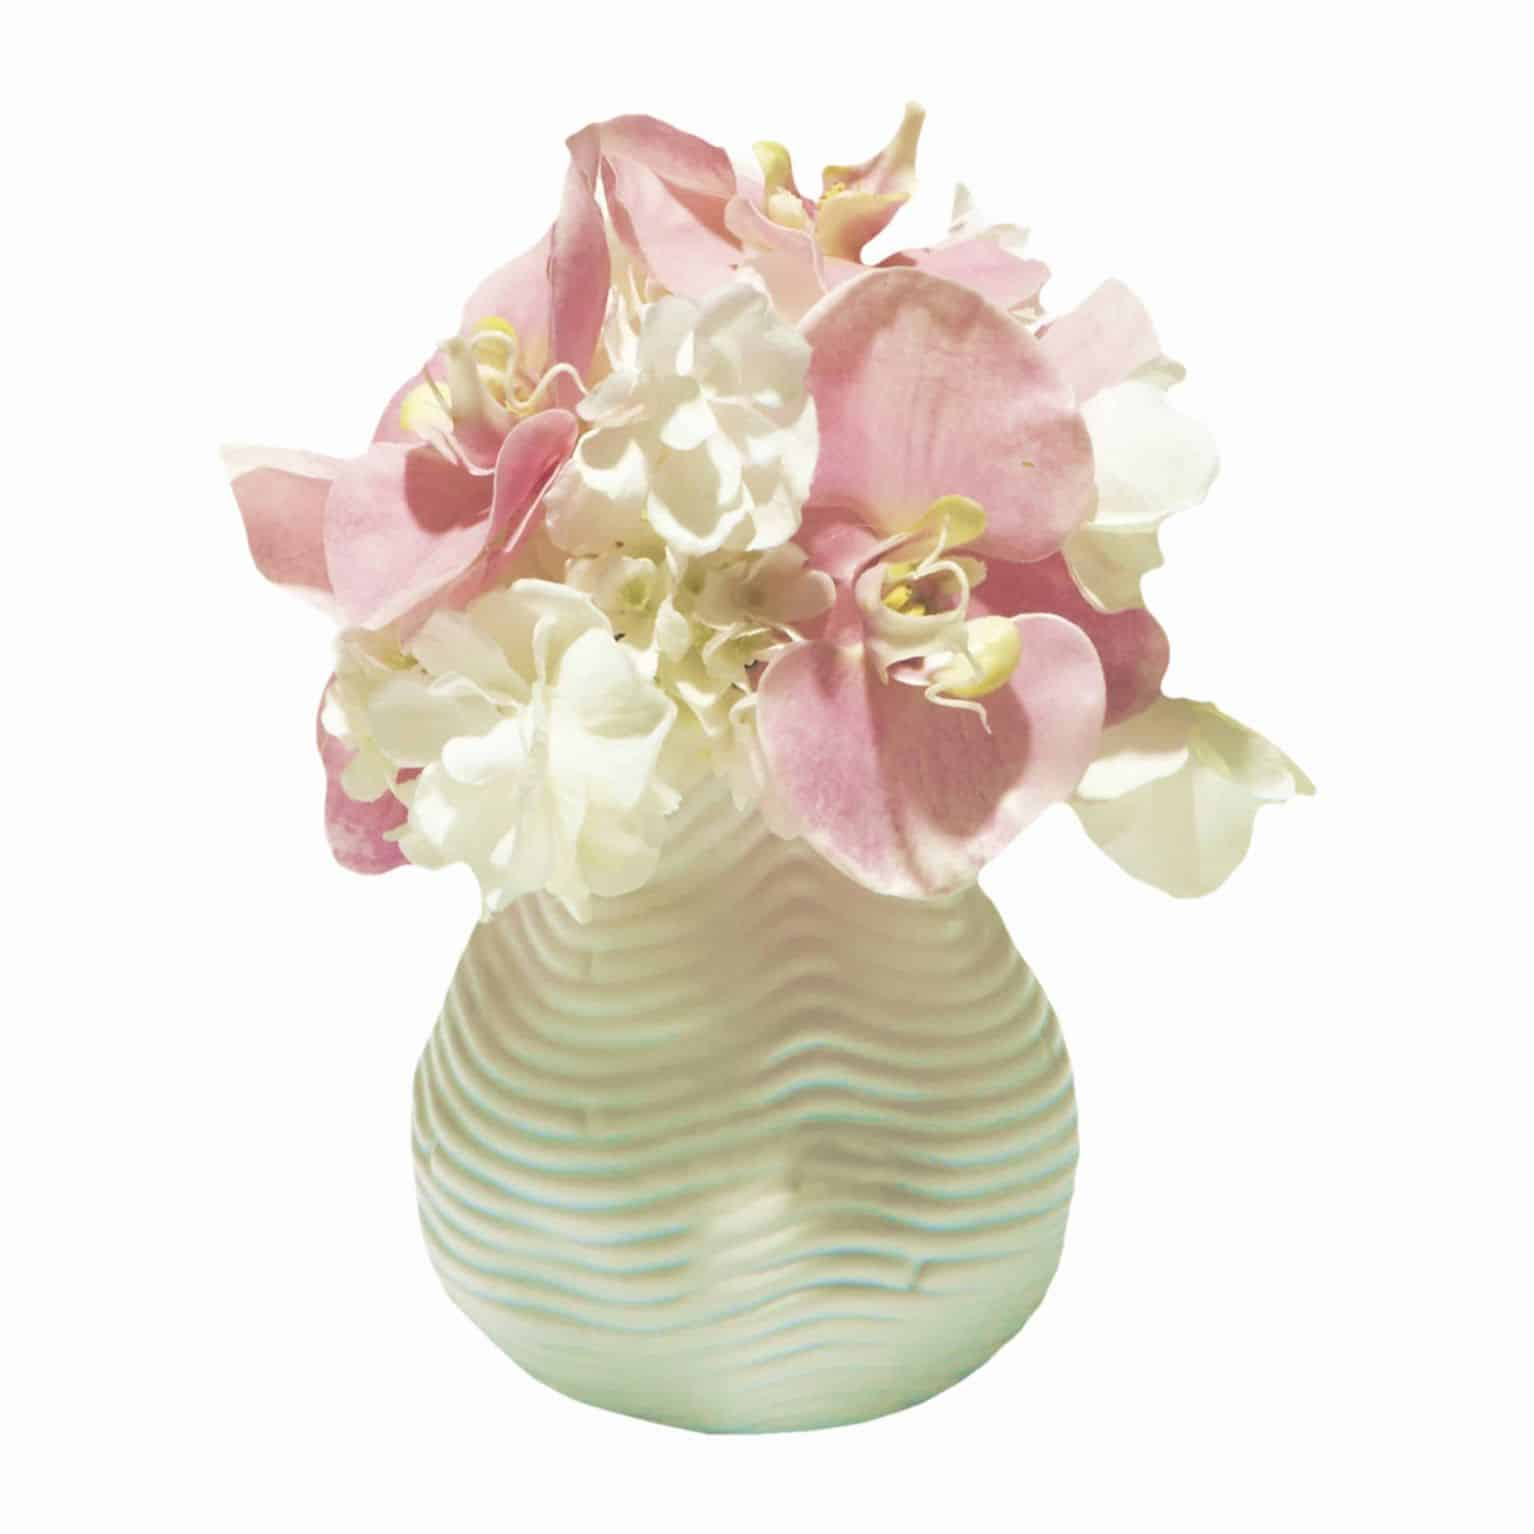 Buy our sweet little vase arrangement of glowing silk white butterfly hydrangea flowers and pretty pink phalaenopsis orchid artificial flowers.